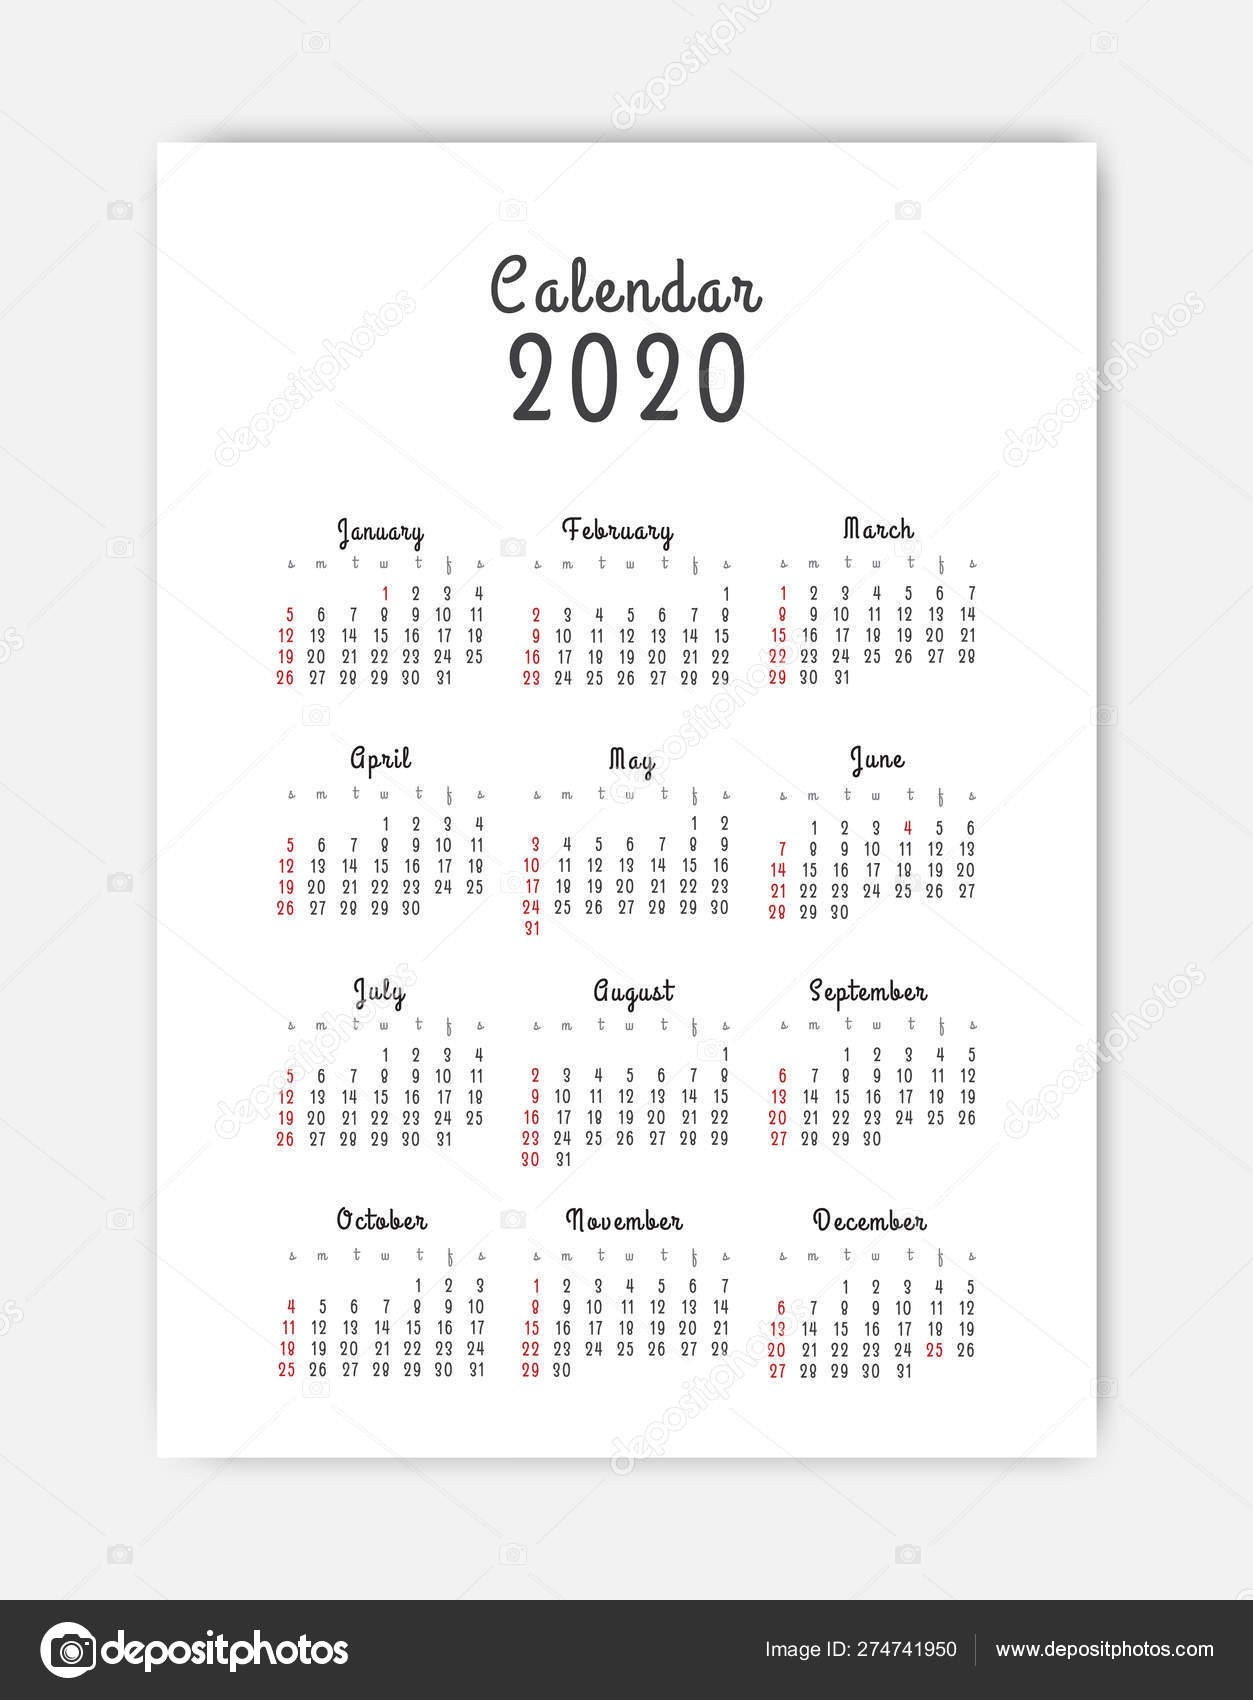 Pick 2020 Printable W-9 | Calendar Printables Free Blank-2021 Calendar To Fill In